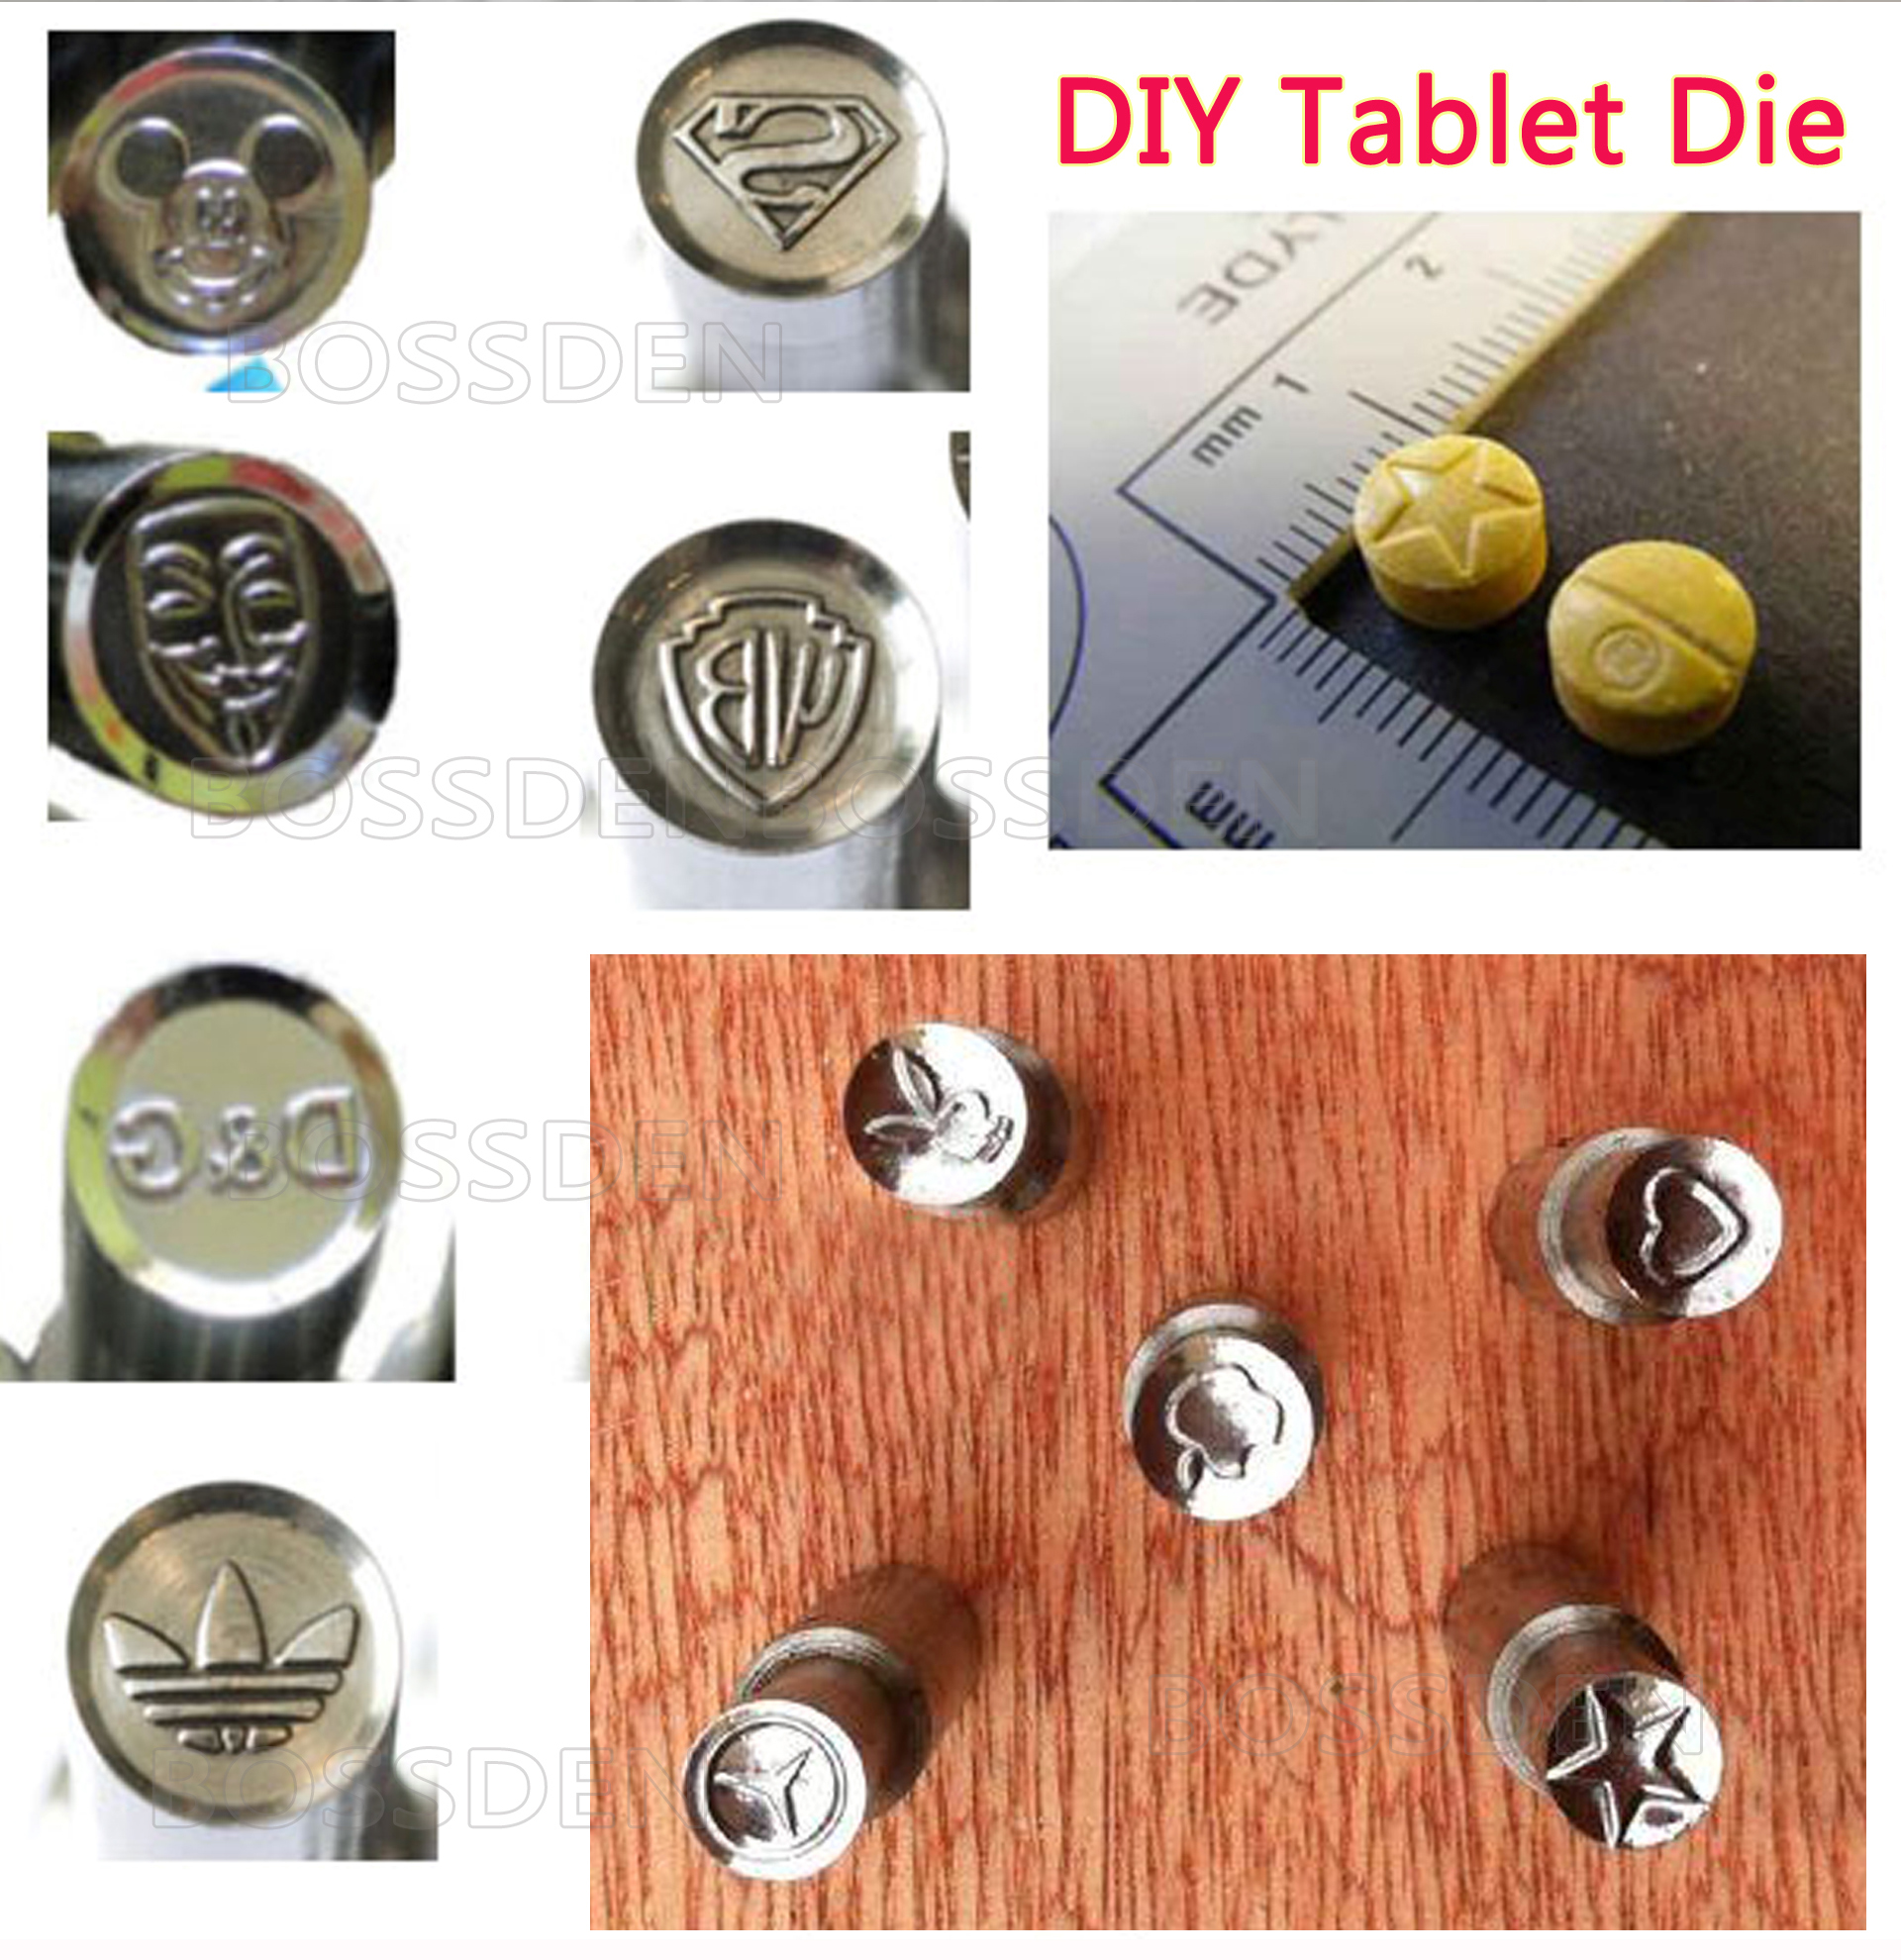 BOSSDEN Milk Tablet Die Pill Press Die Candy Punch Die Set Medicinal Tablet Making Stamp Mold